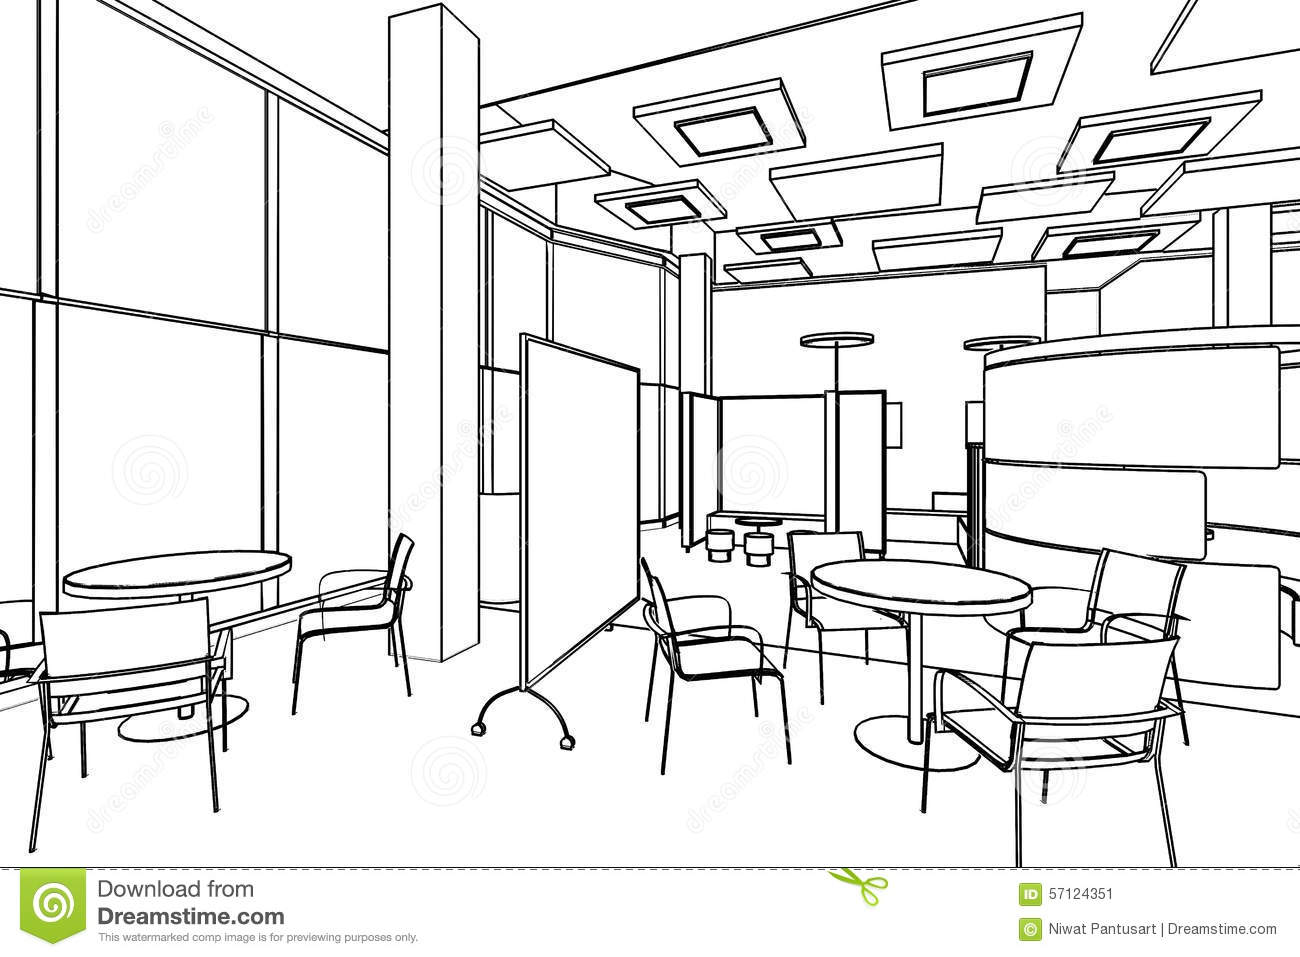 1300x957 Outline Sketch Drawing Perspective Of A Interior Space Office.  Picture #85A625 This Yearu0027s